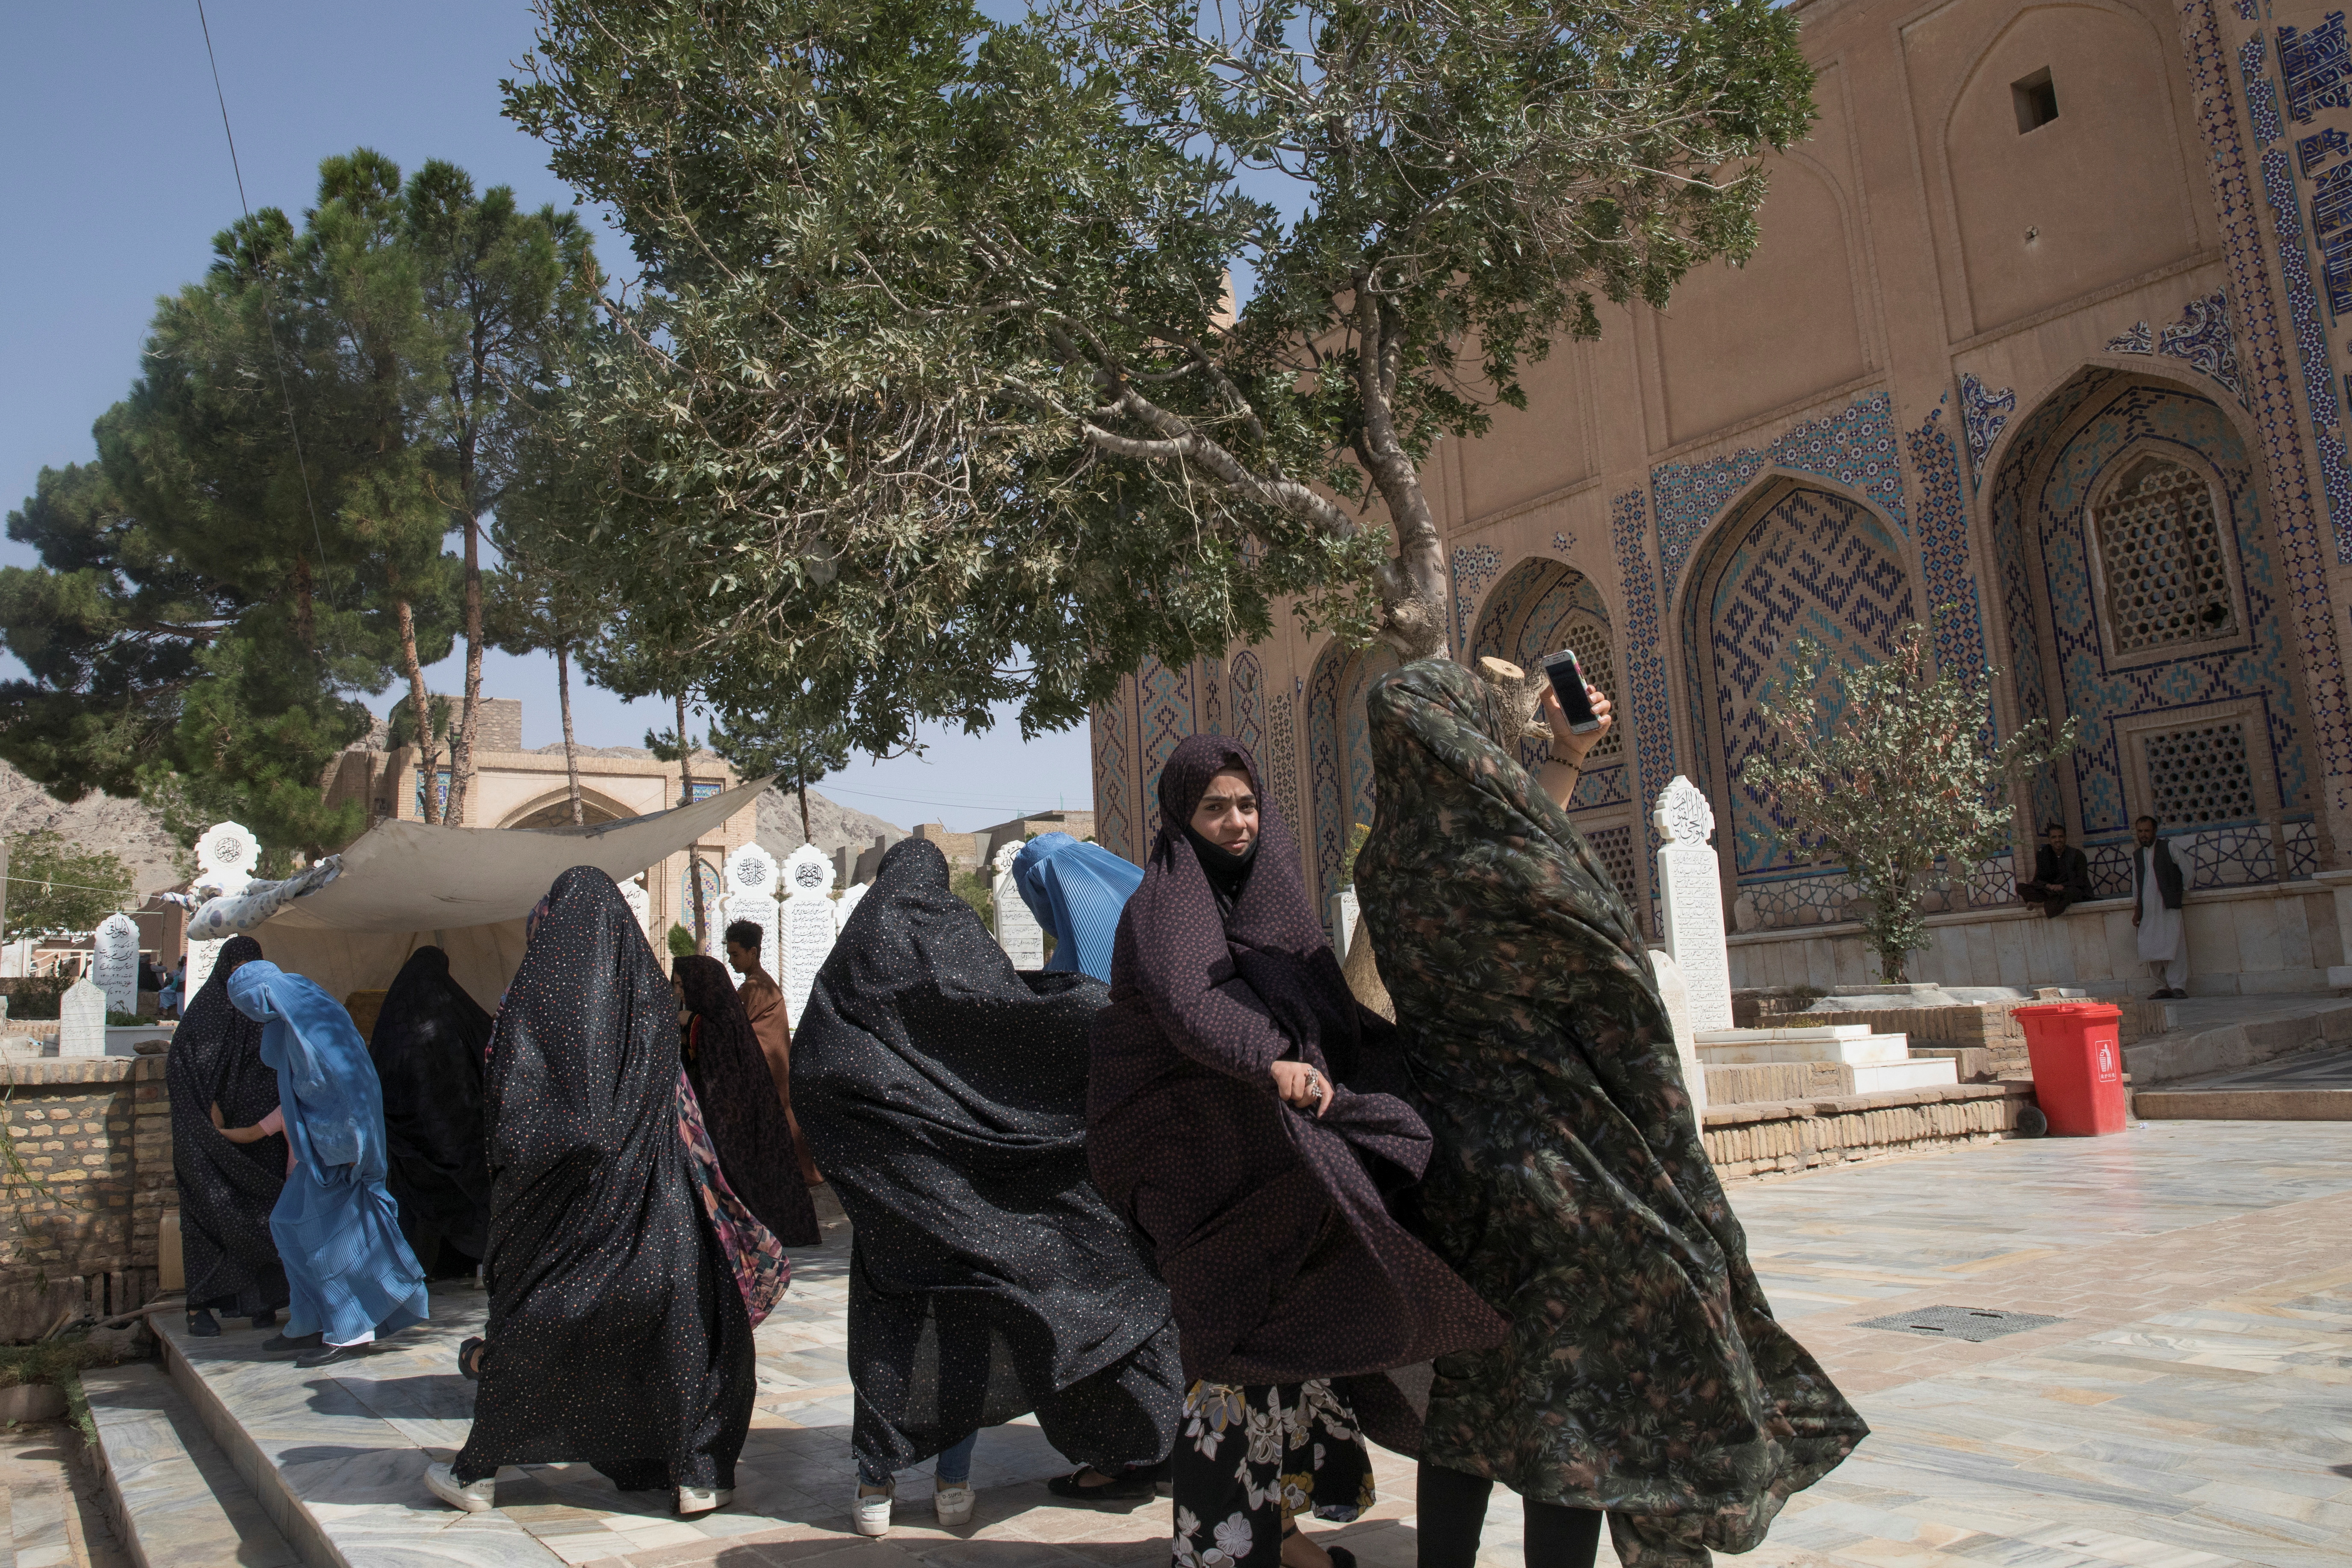 Afghan women walk at a mosque in Herat, Afghanistan September 10, 2021. WANA (West Asia News Agency) via REUTERS